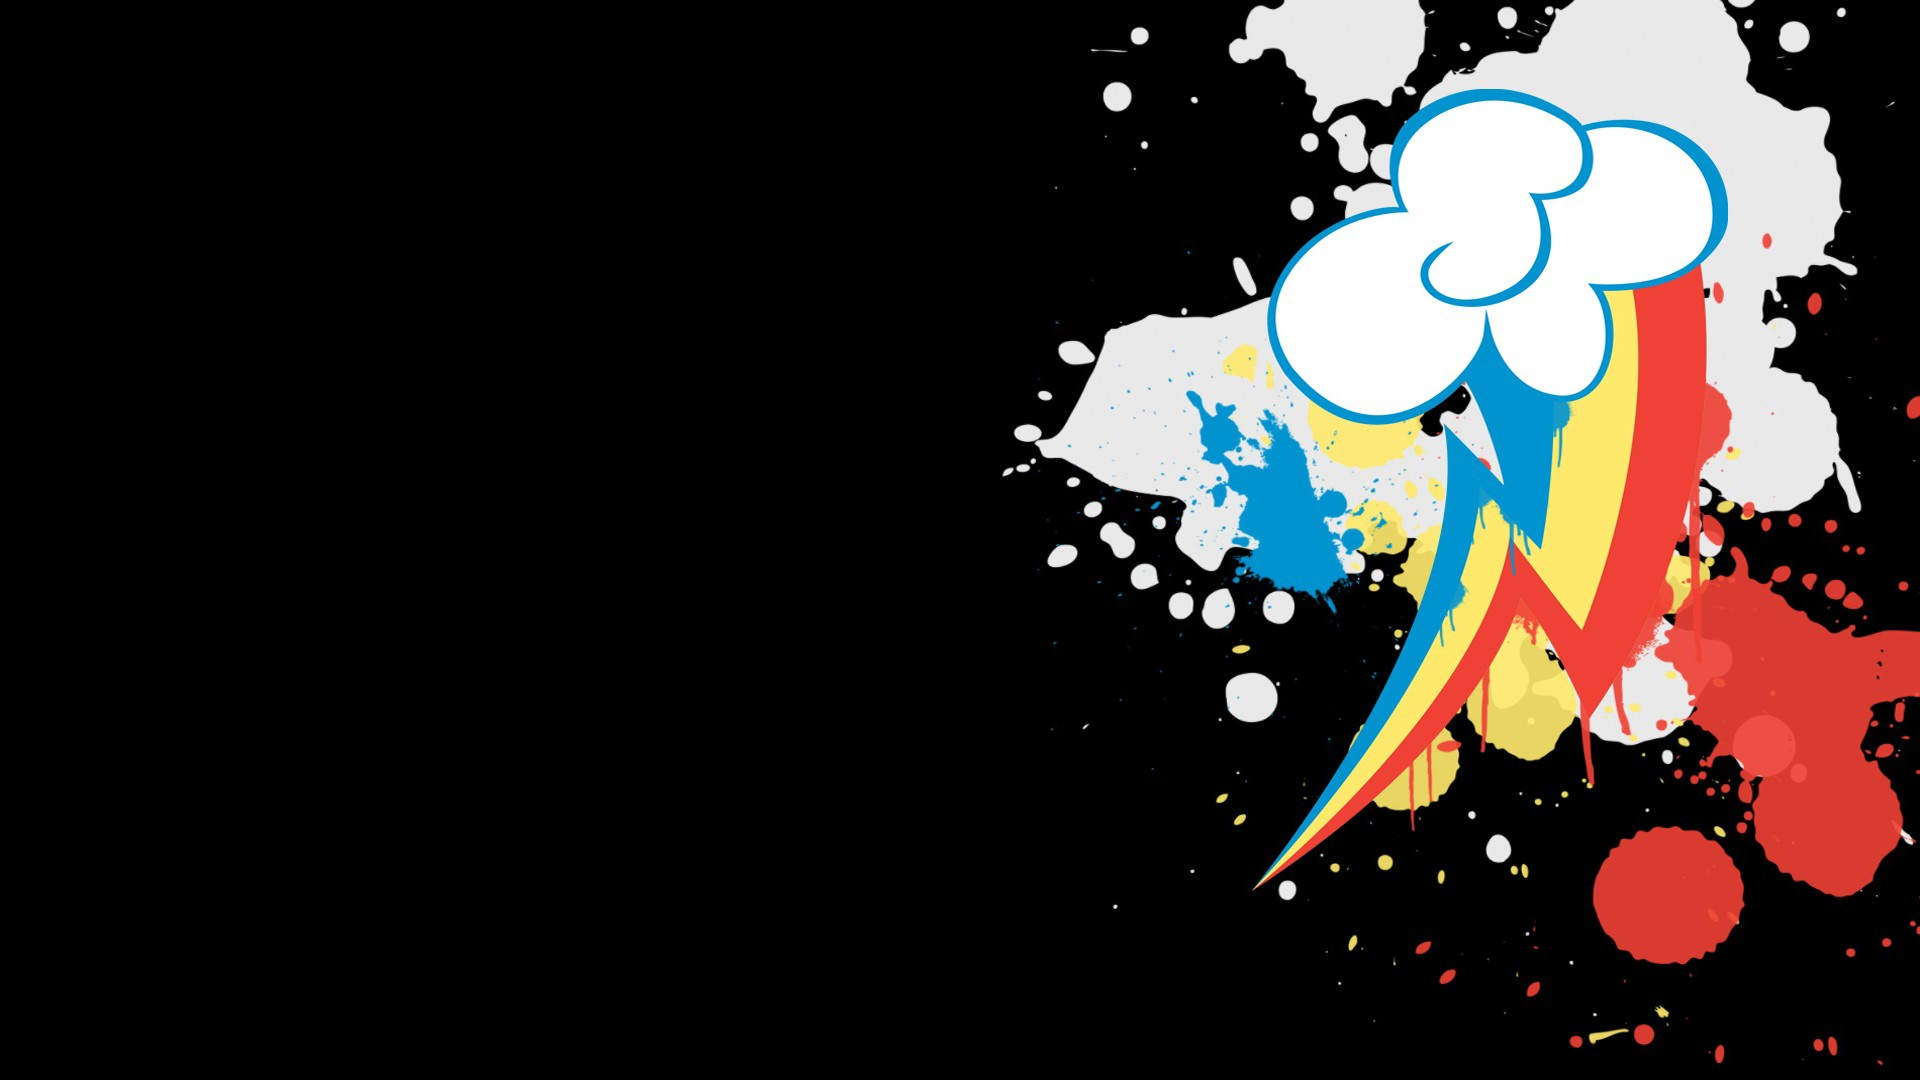 My little pony rainbow dash cutie mark wallpaper - My little pony cutie mark wallpaper ...